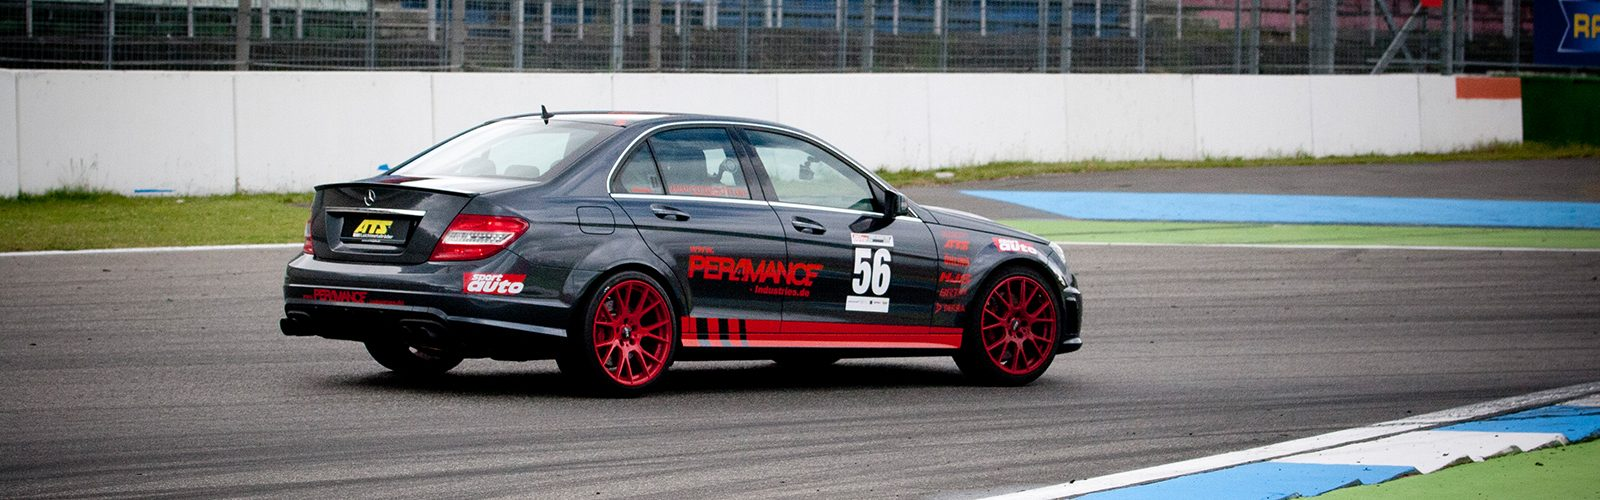 Per4mance Industries Hockenheimring Eventvideo